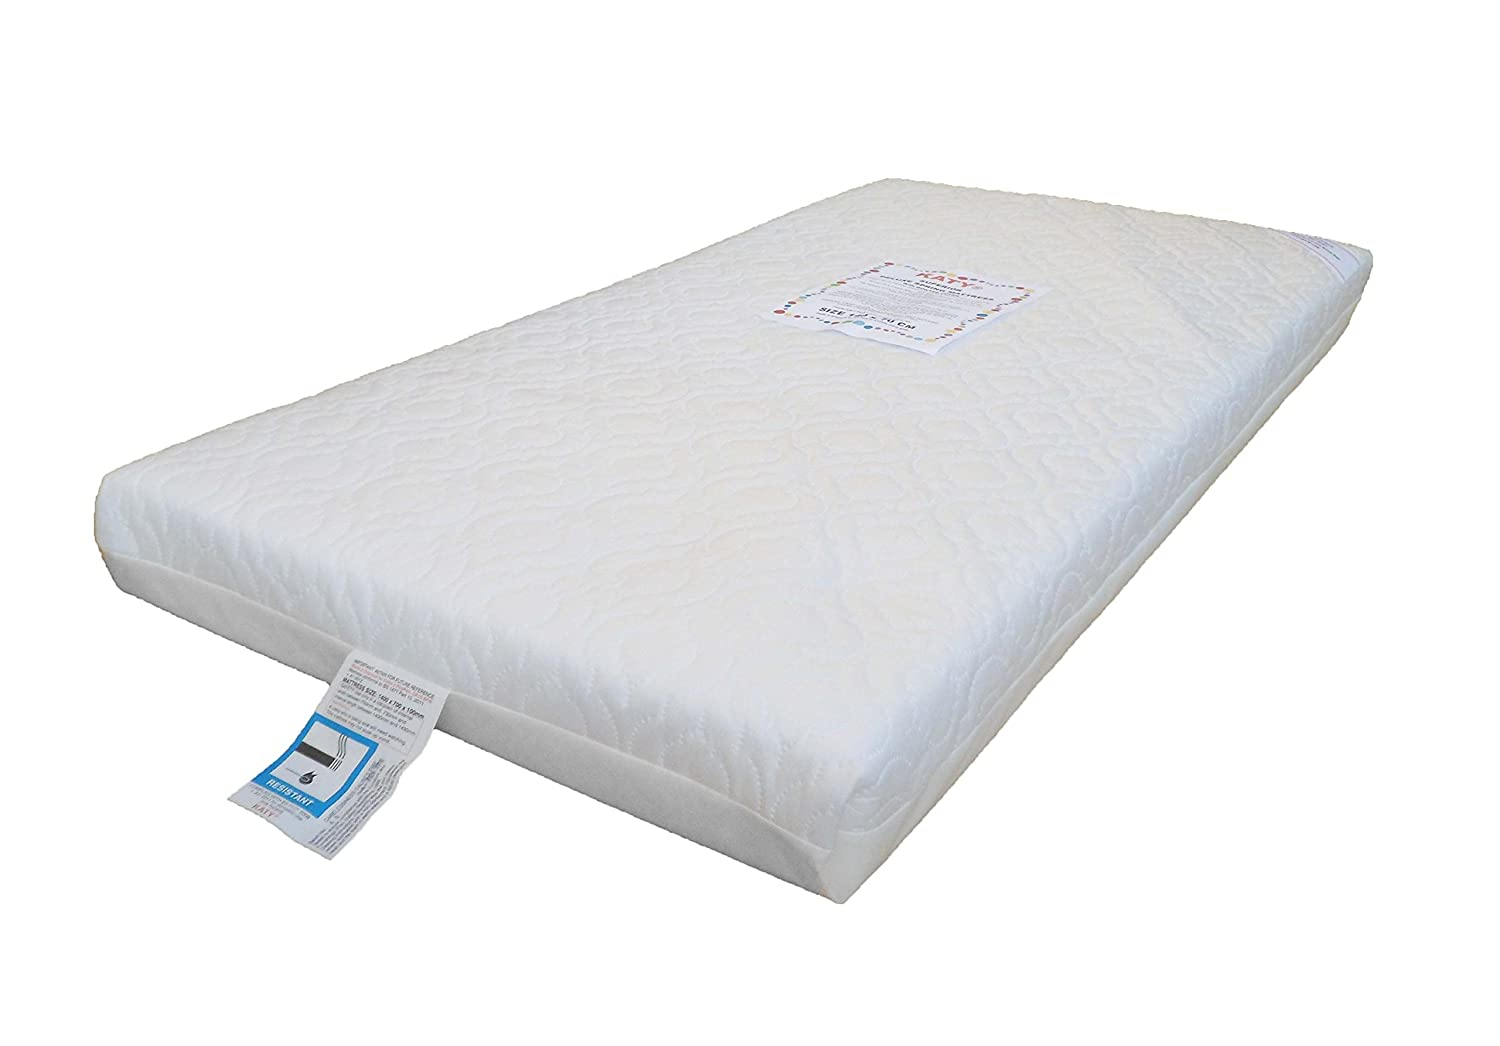 Superior Deluxe Spring Cot Bed-Junior Bed Sprung Mattress